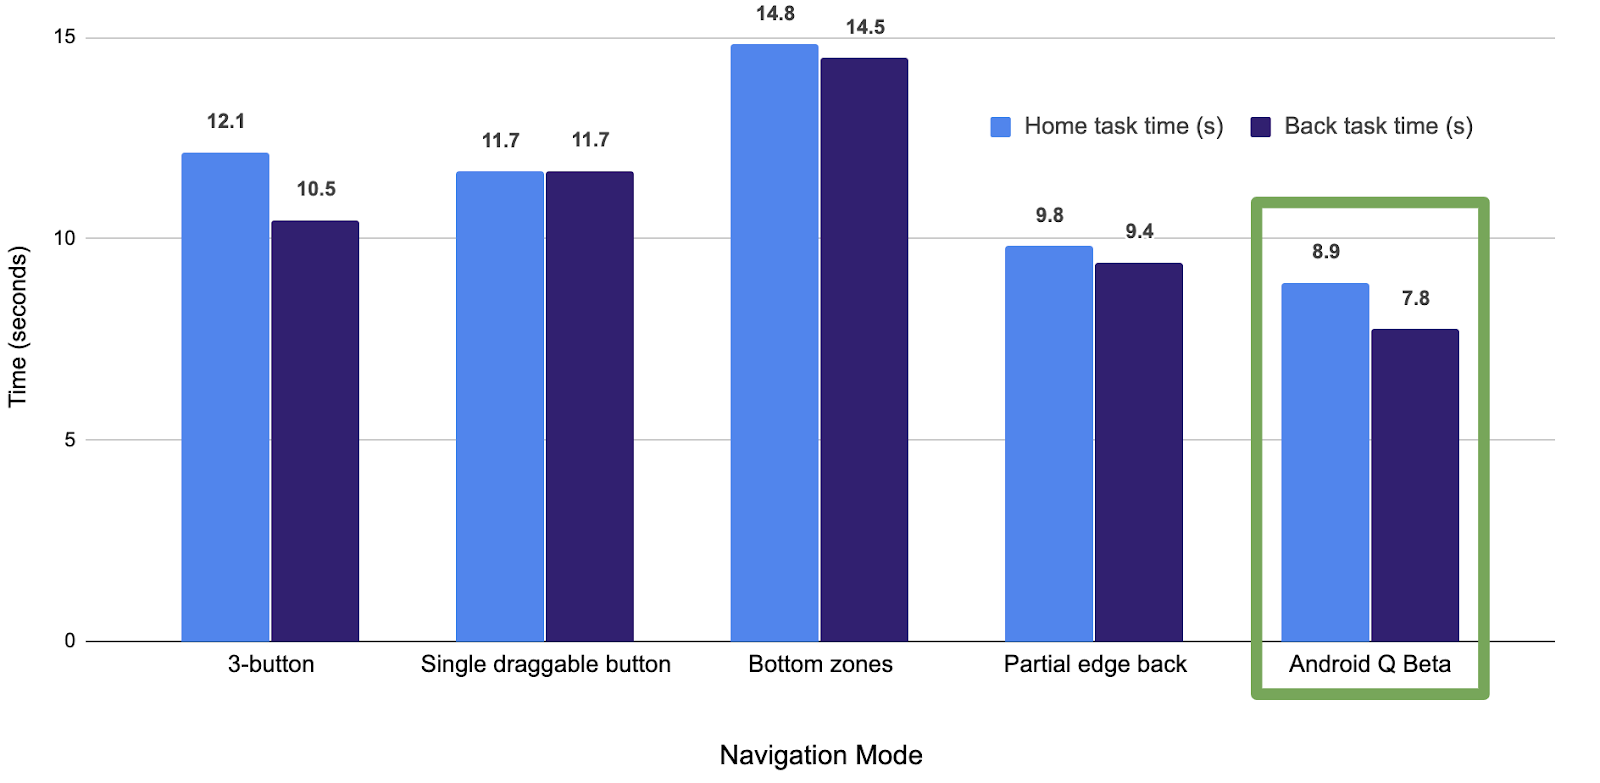 Comparison of average time required to complete Home/Back tasks across various navigation modes (lower is better)